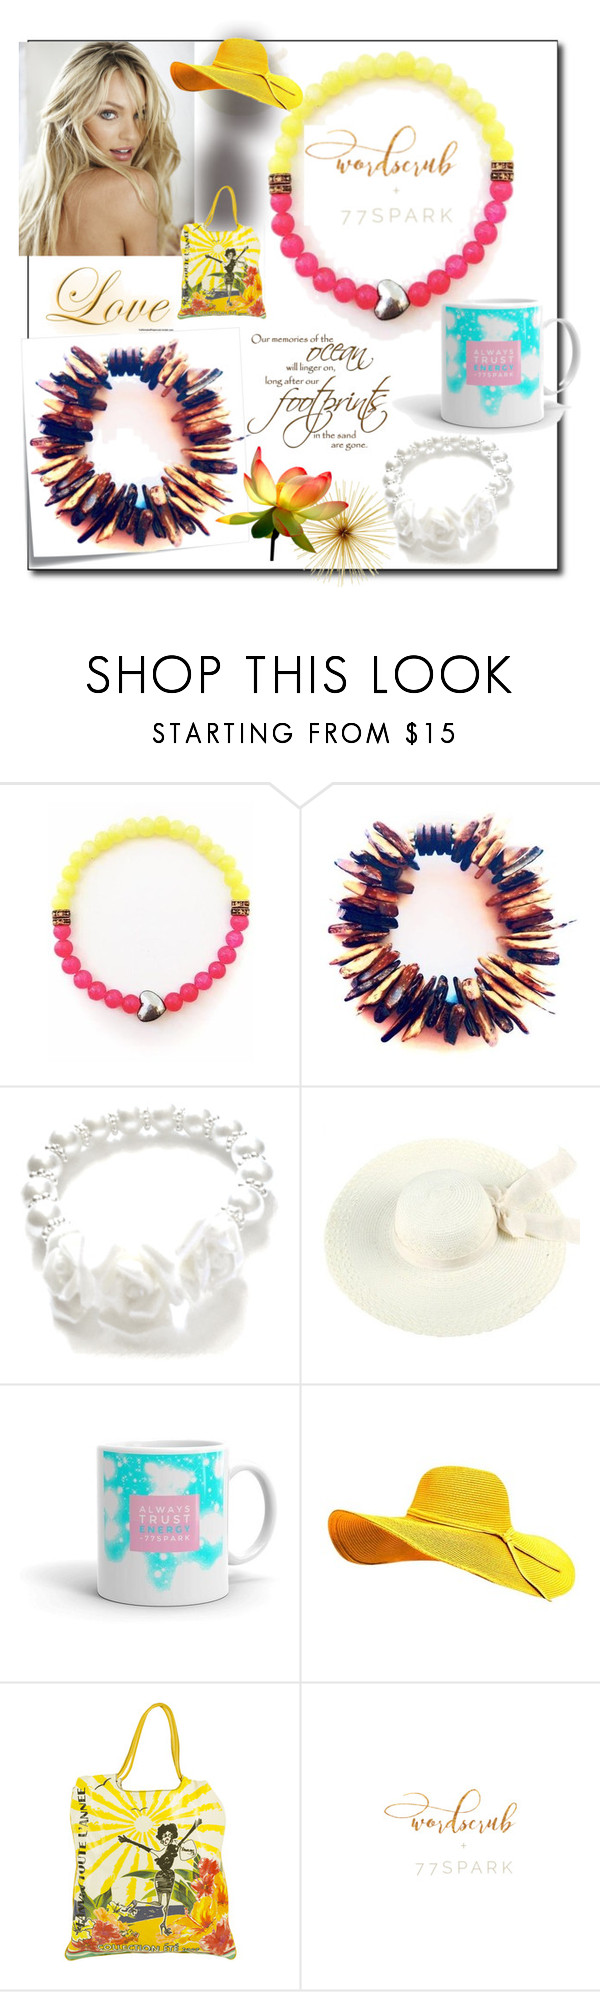 """""""shop77spark#15"""" by alma-ja ❤ liked on Polyvore featuring Post-It, Monday, Lanvin and 77spark"""